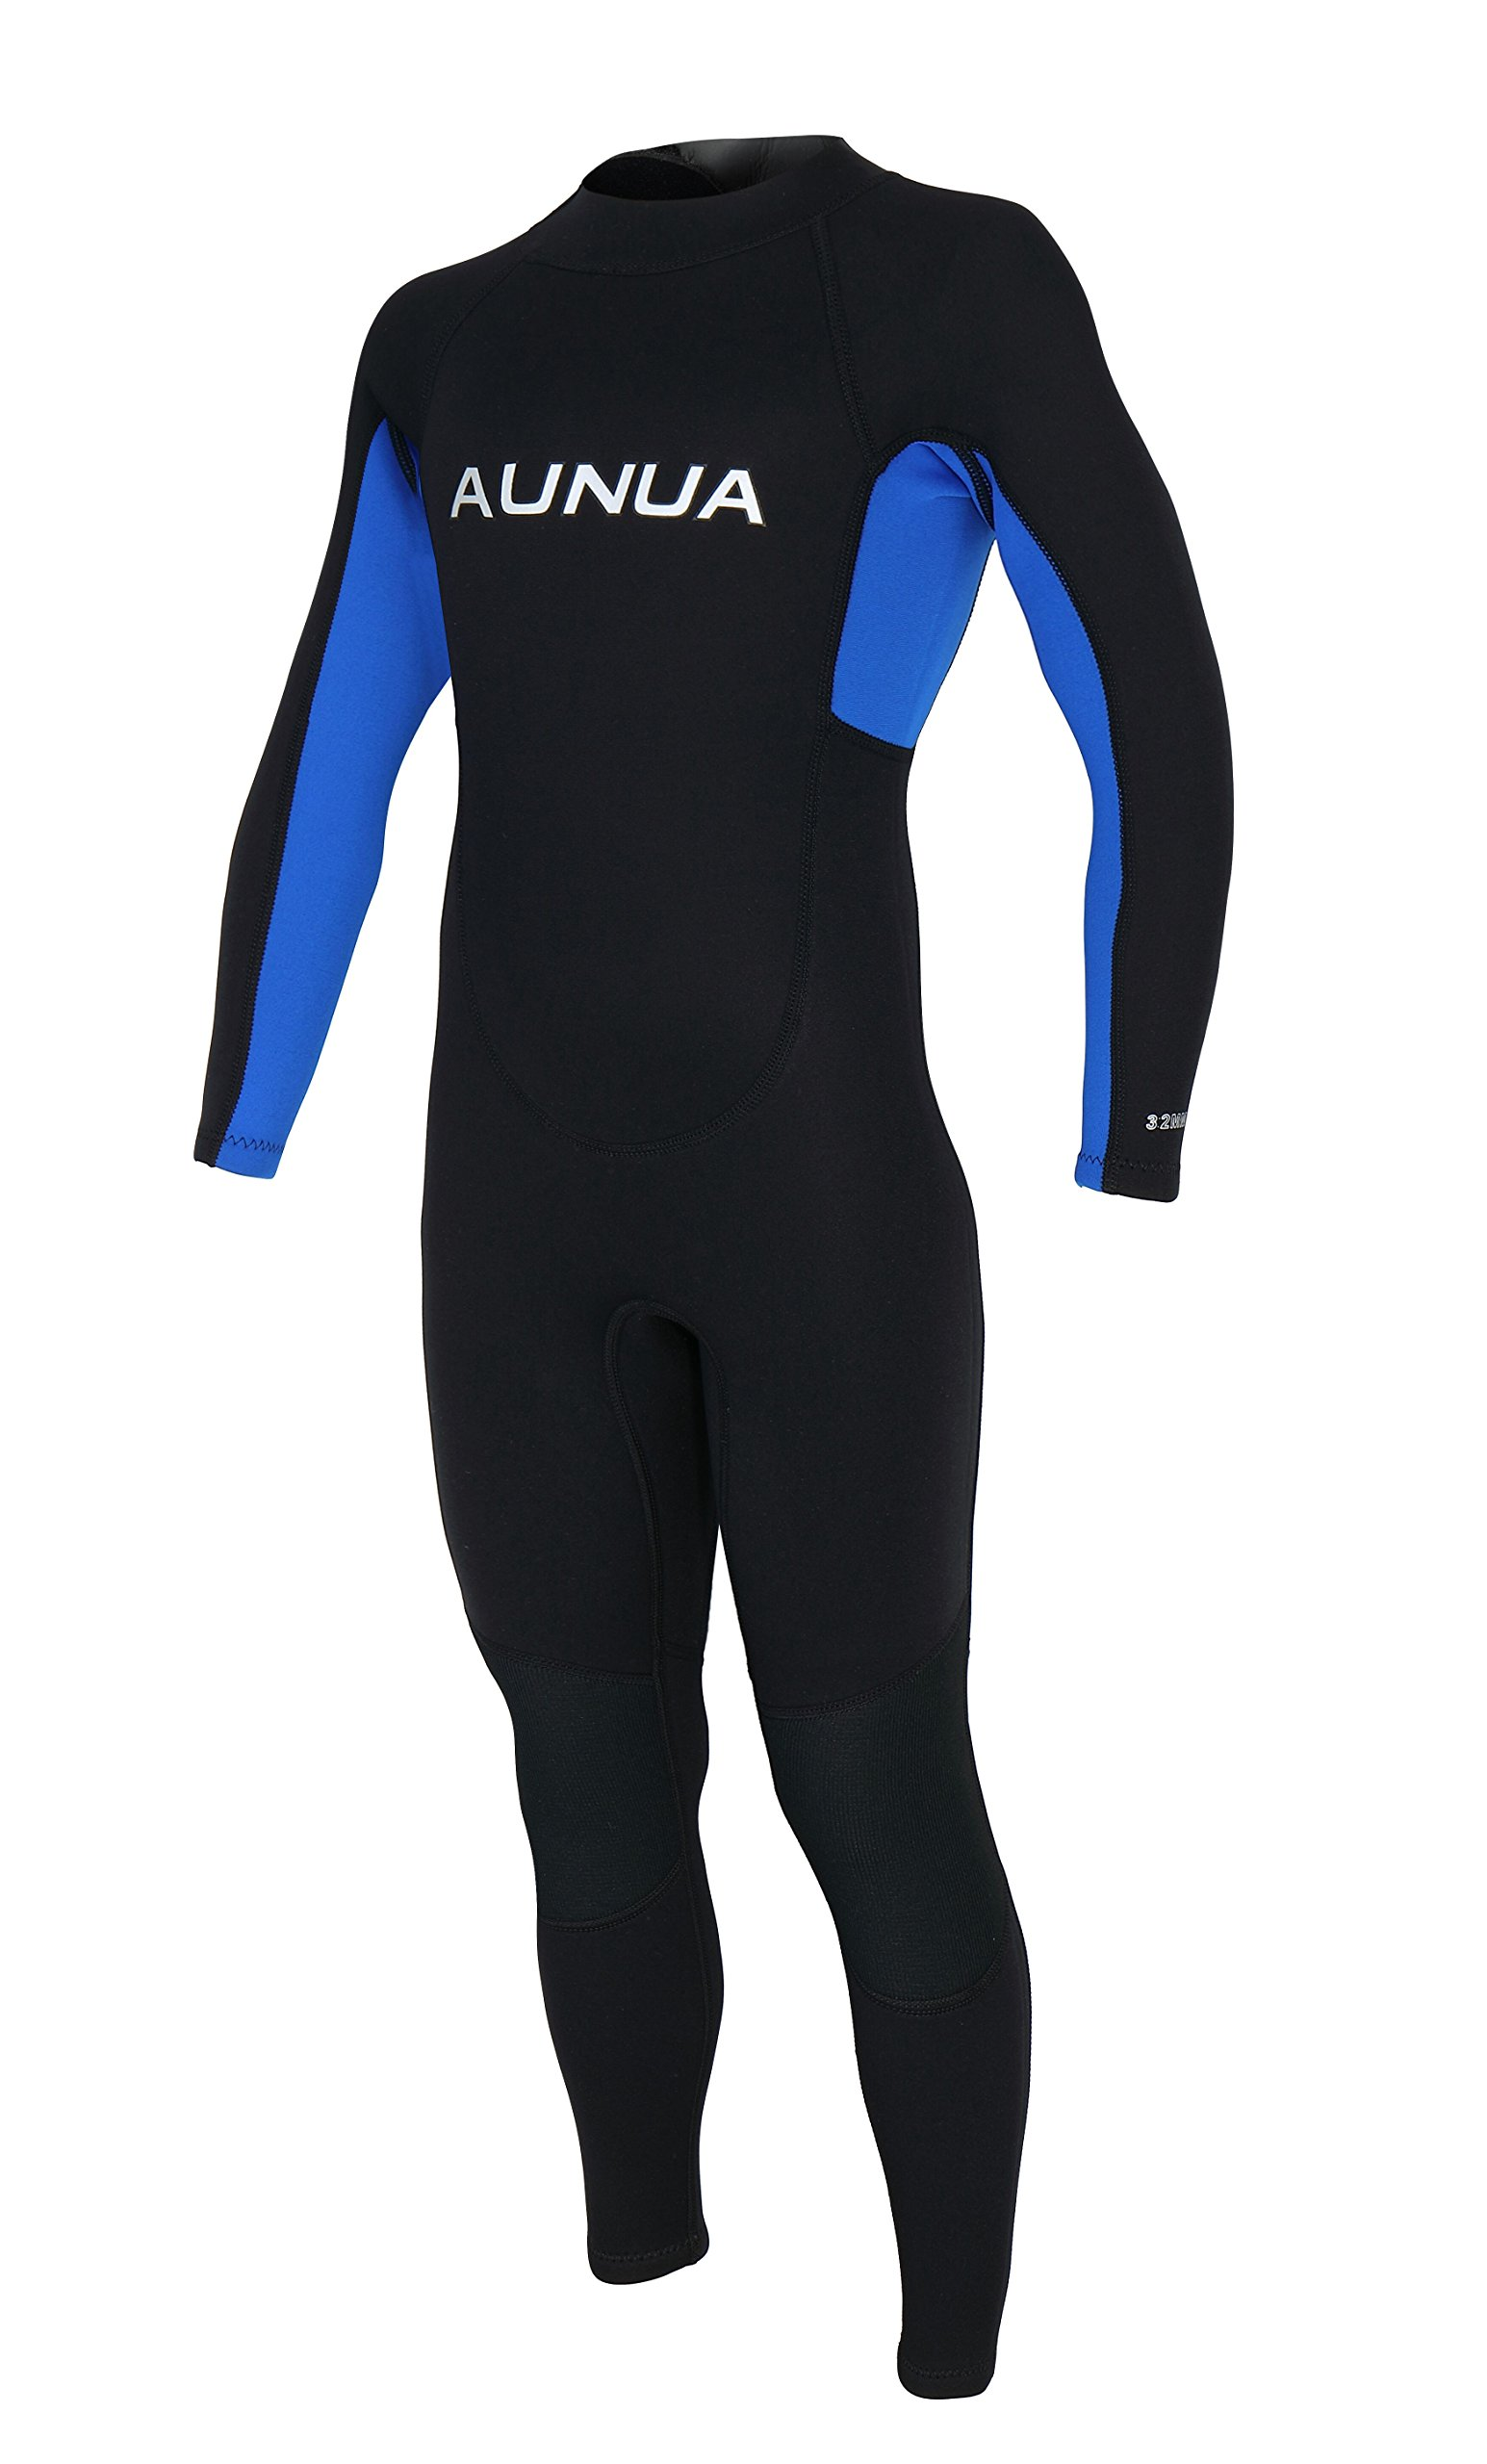 Aunua Youth 3/2mm Neoprene Wetsuits for Kids Full Wetsuit Swimming Suit Keep Warm(7031 BlackBlue 6)